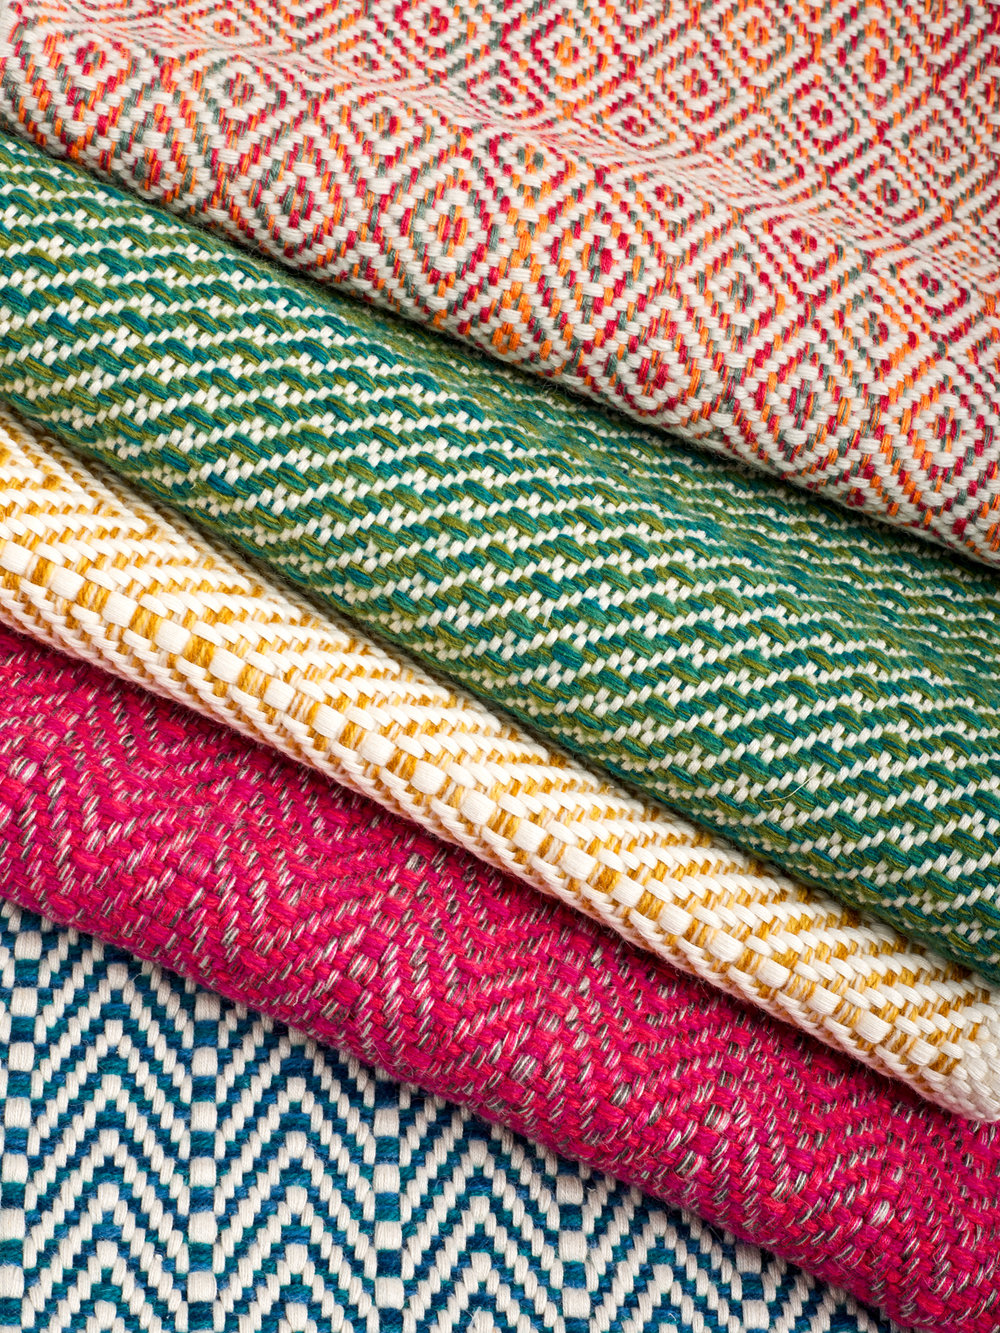 A stack of hand-woven rugs in jewel tones with different geometric patterns.